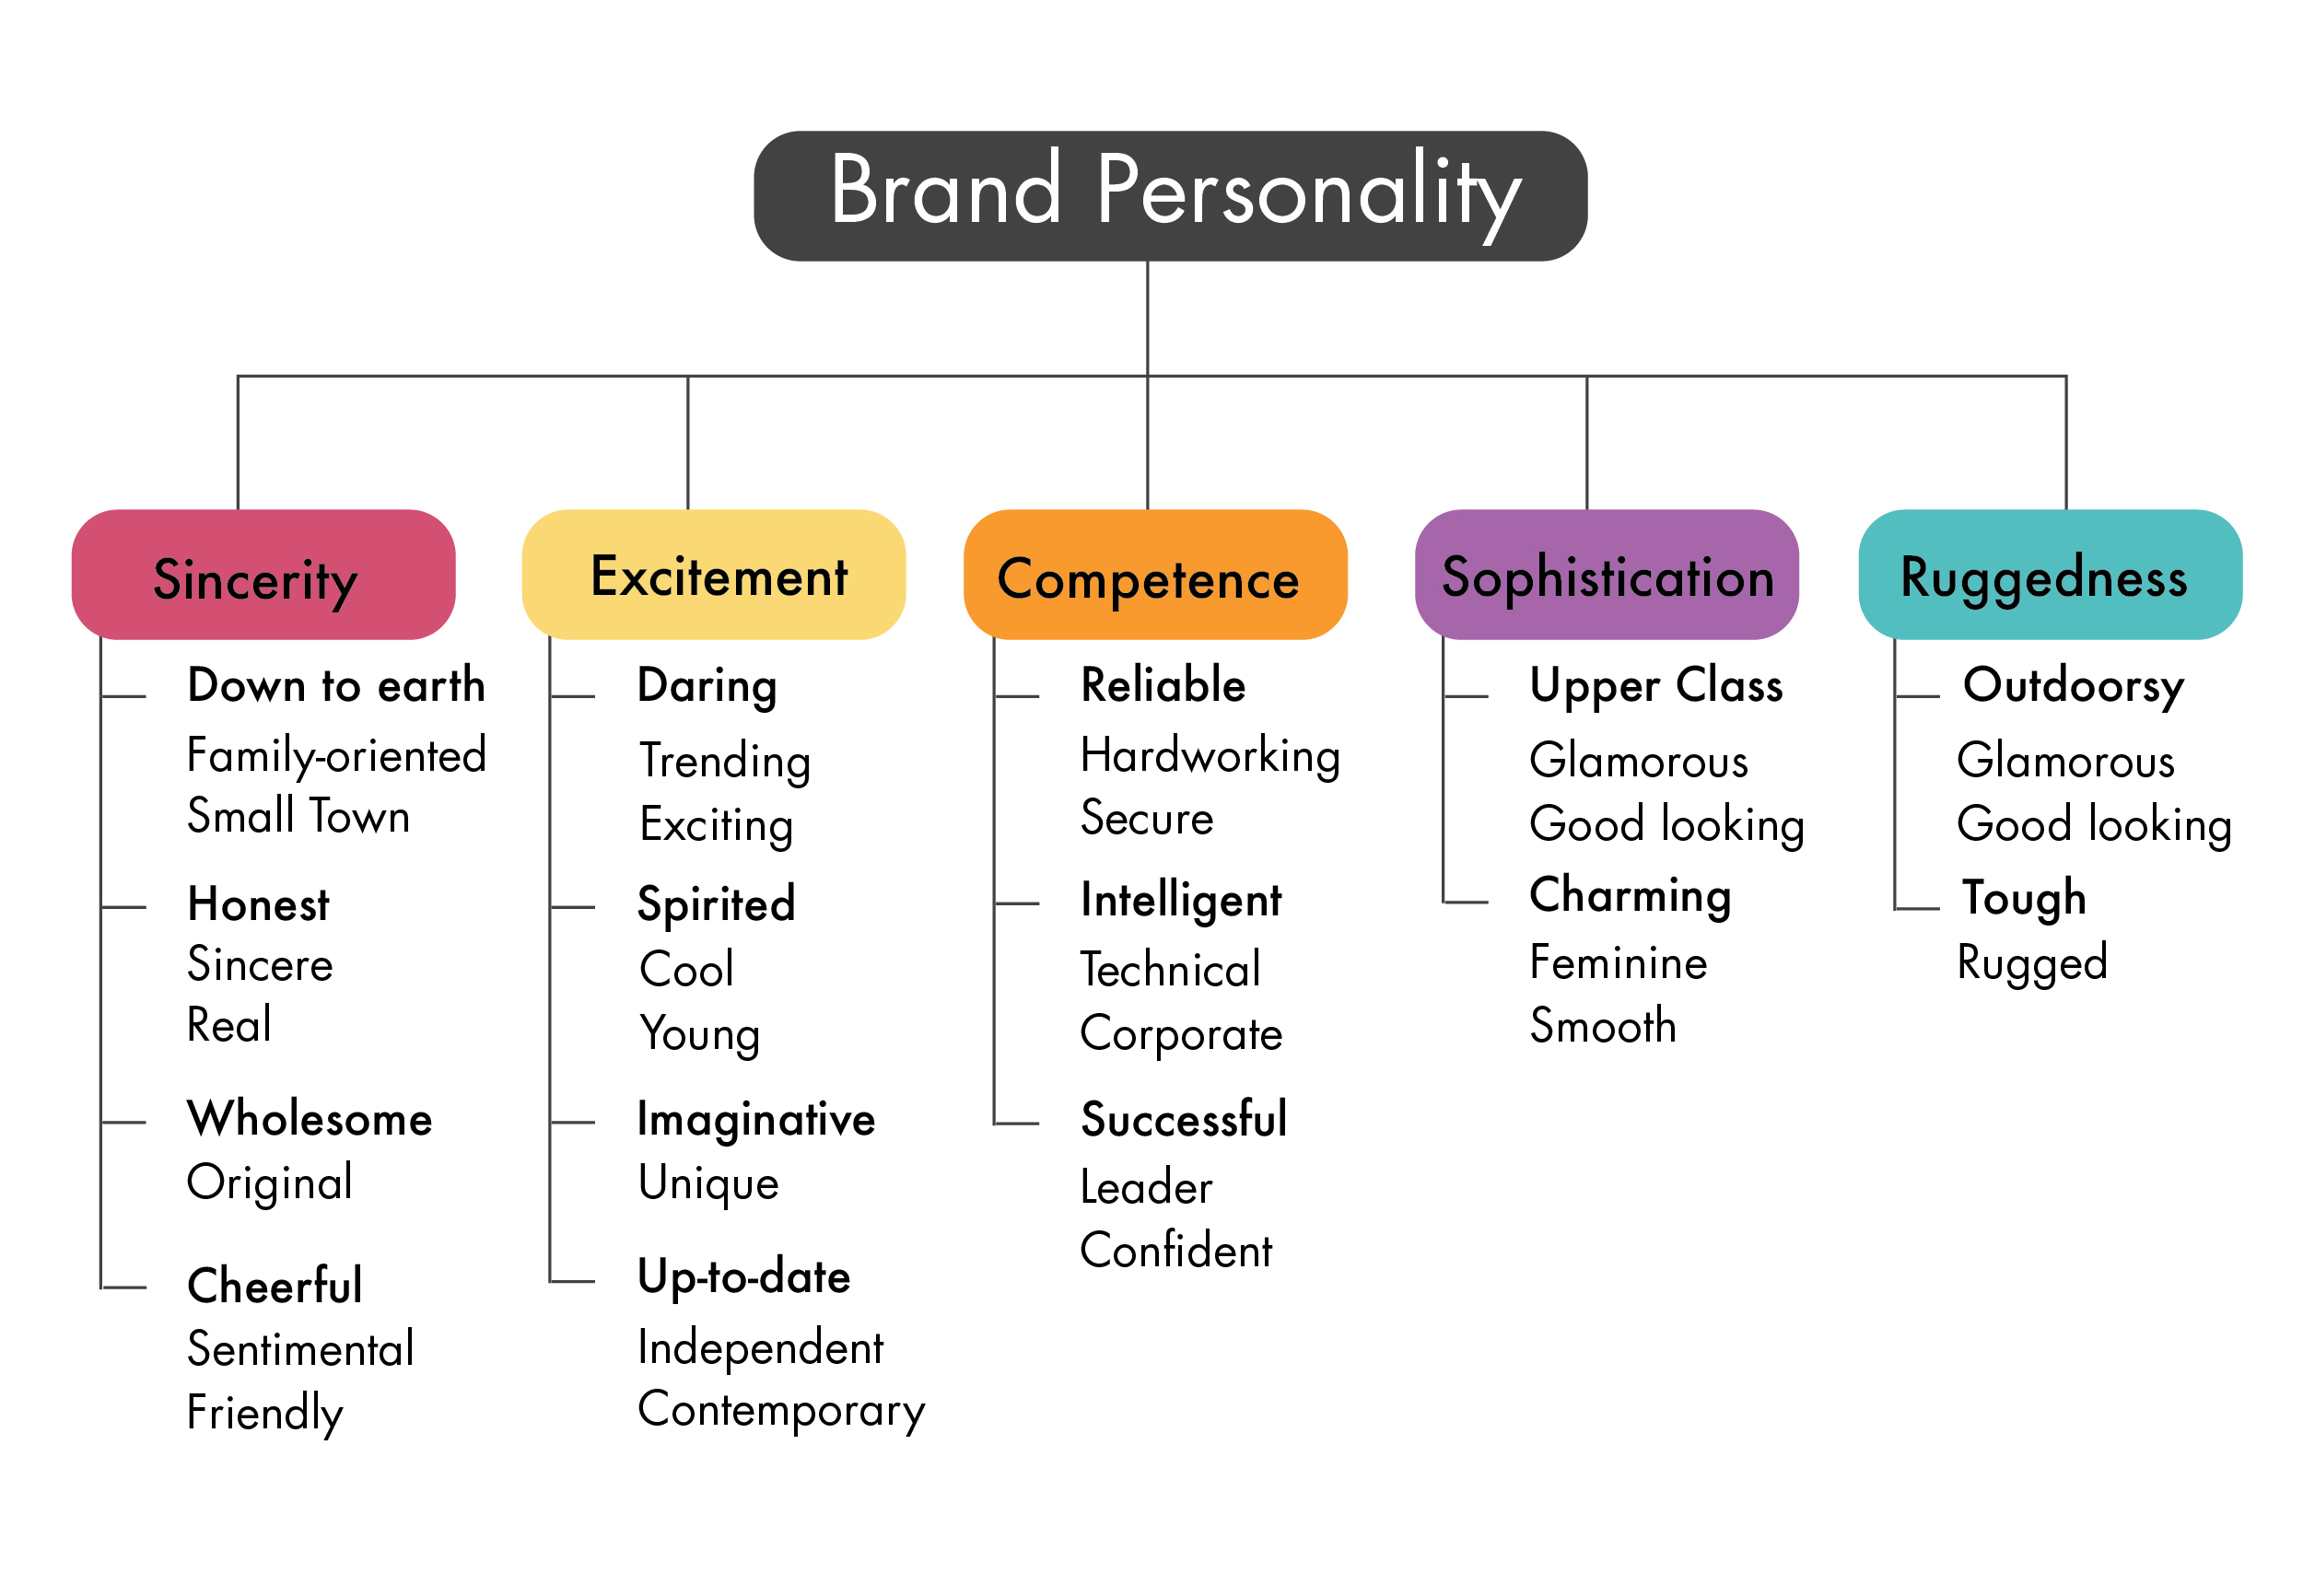 Brand Personality Aaker's Diagram